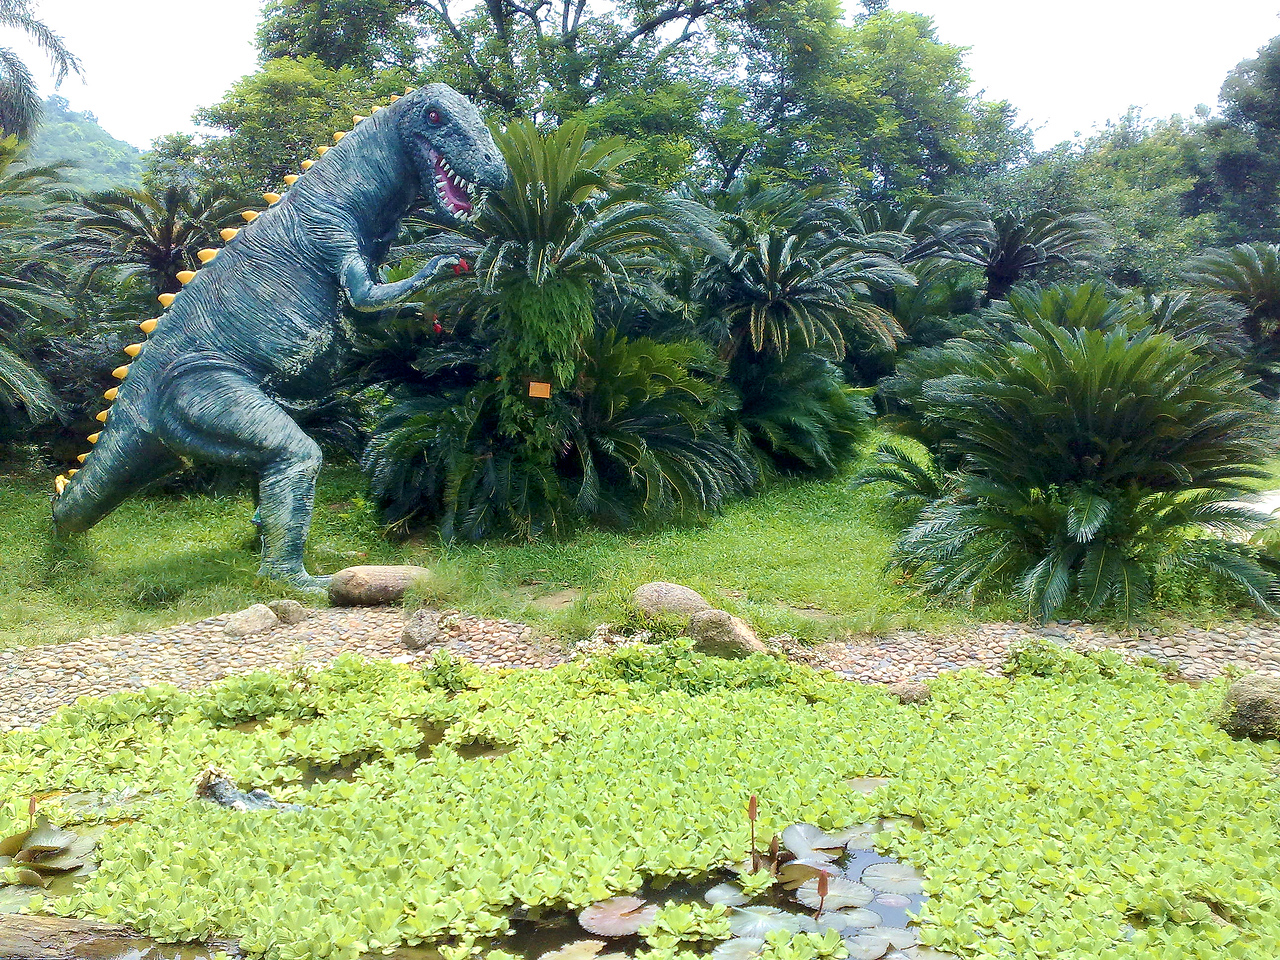 20090901_895 Tyranossaurus Rex, not having his fill of bubble-tea, hungrily eyes off some cycads.